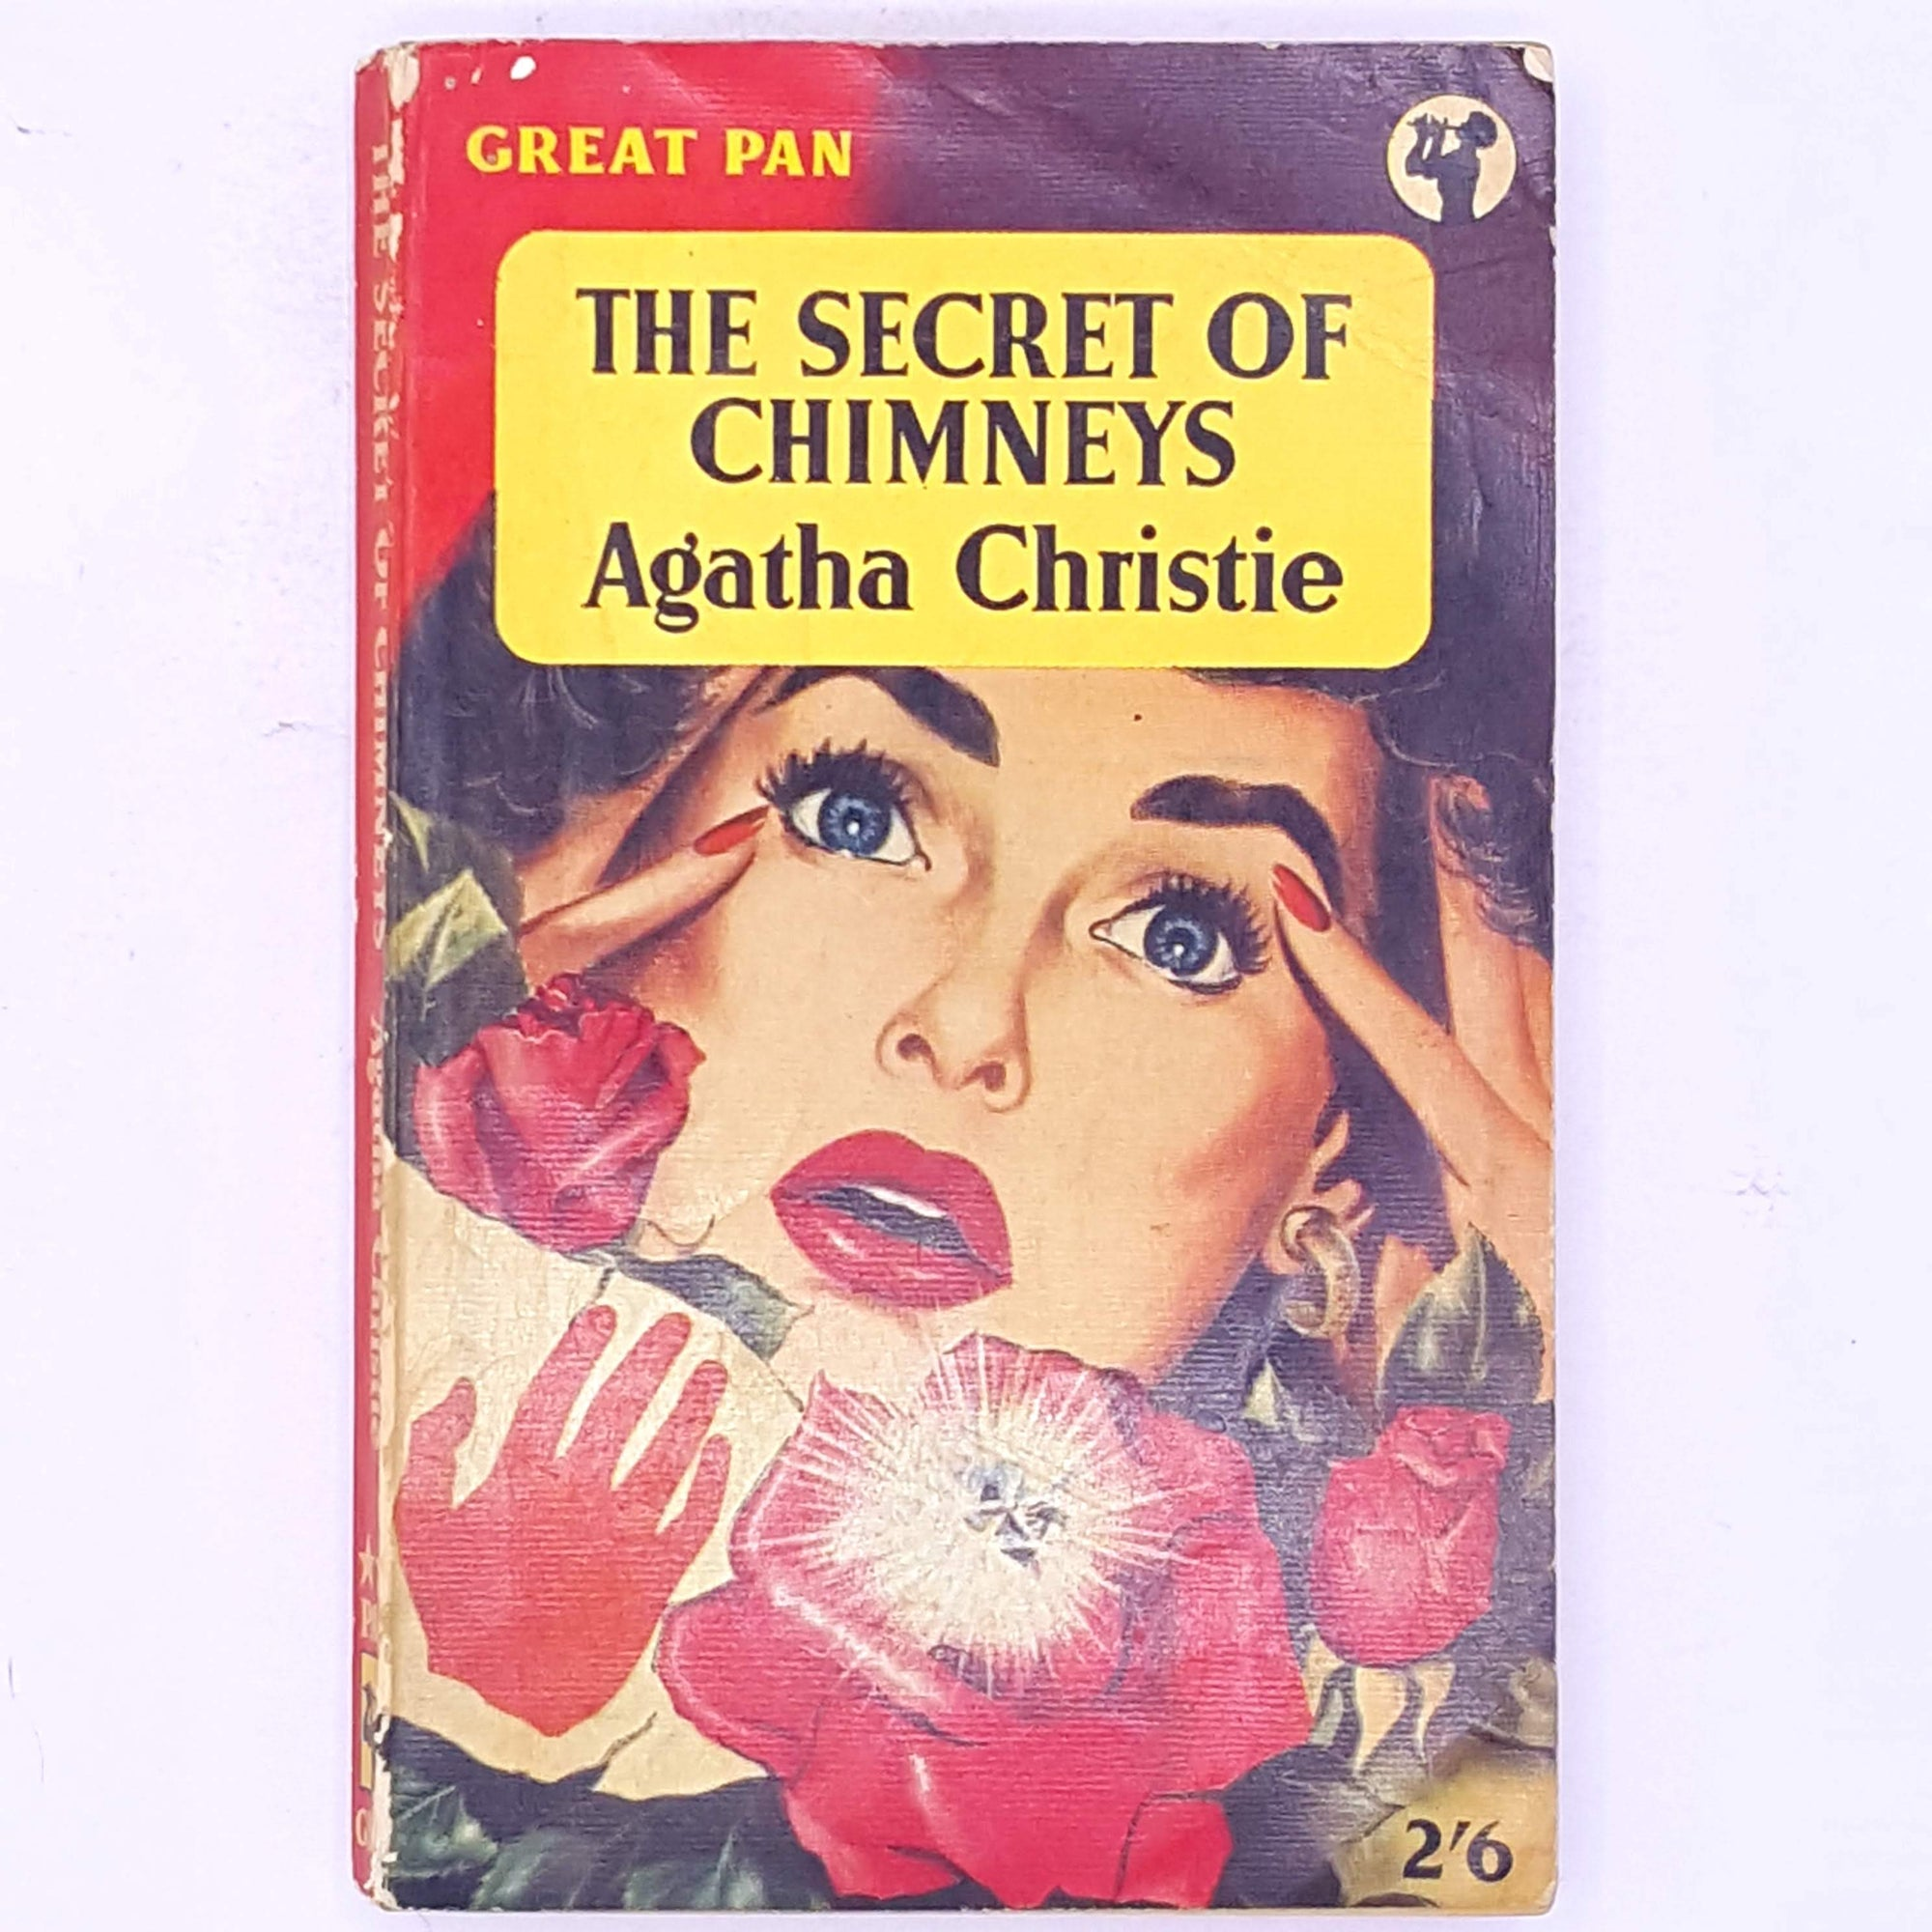 Agatha Christie - The Secret Of Chimneys